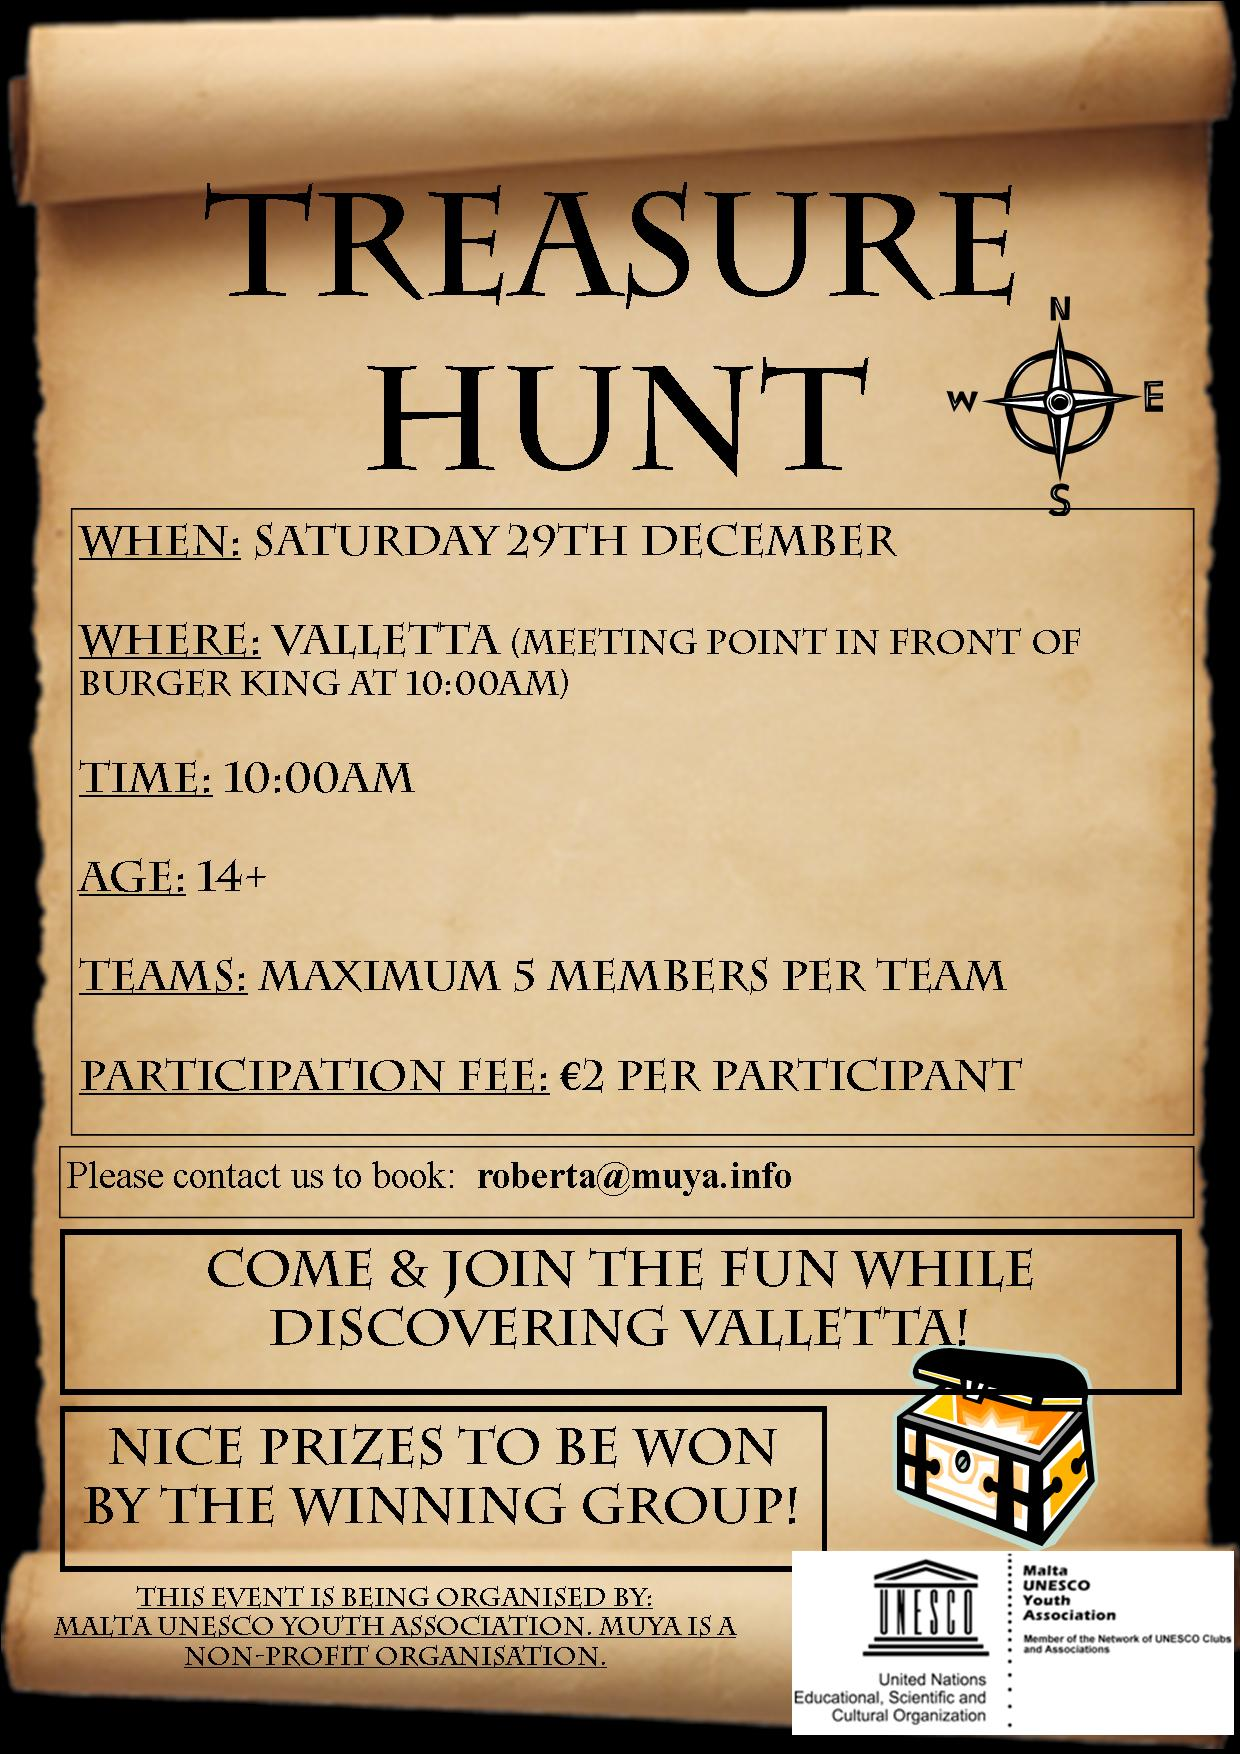 treasure hunt poster jpeg  u2013 maltacvs